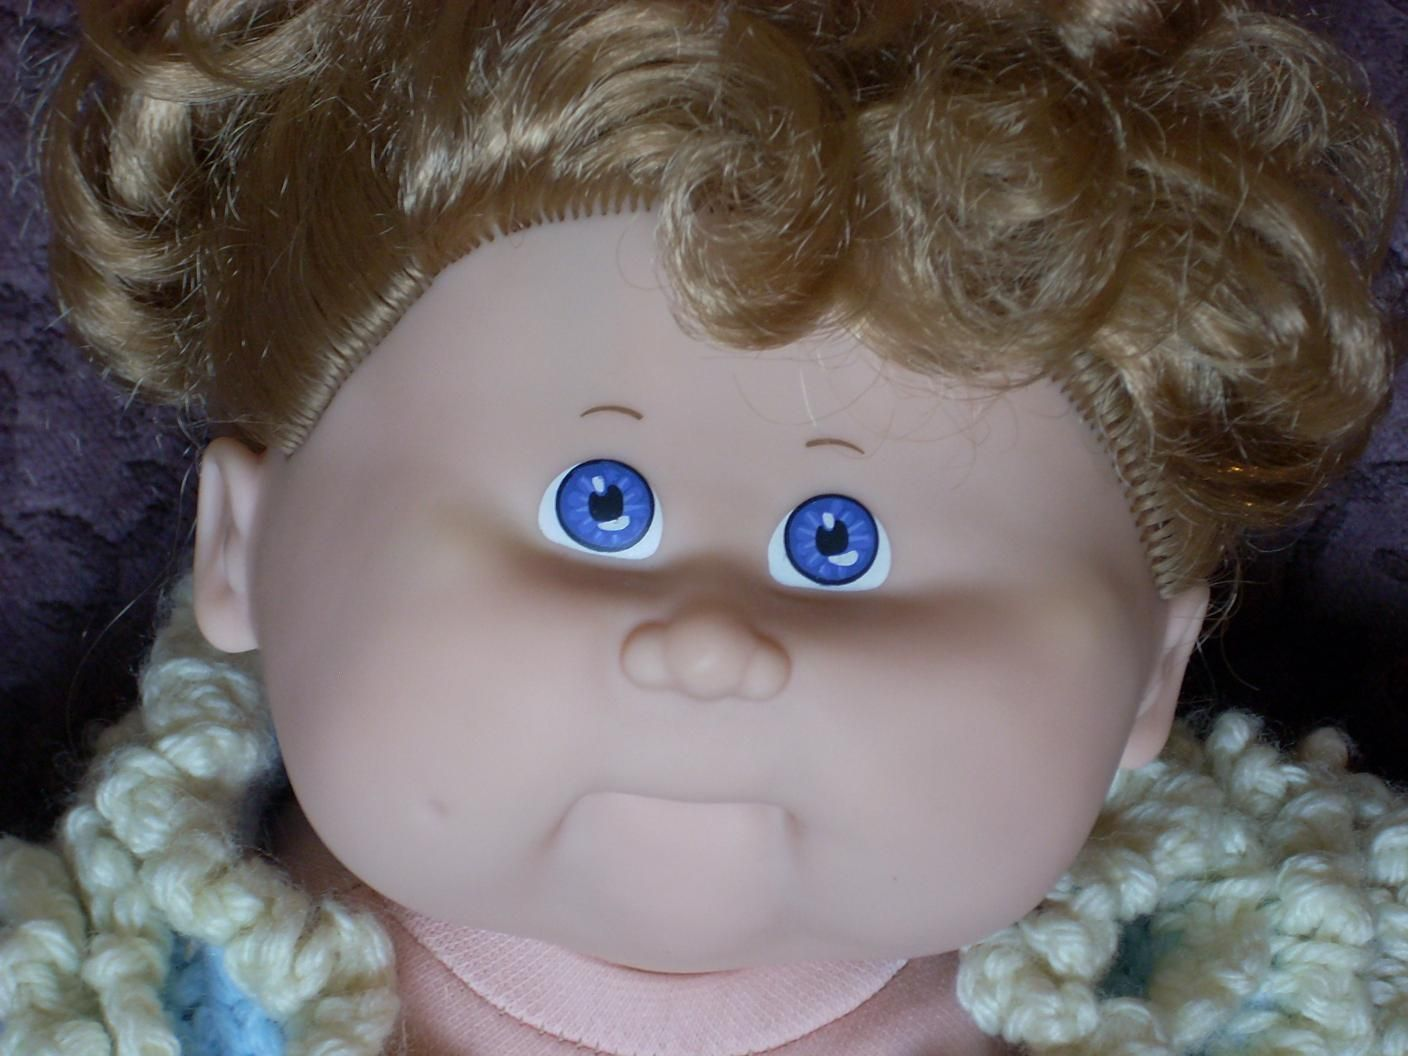 1987 Coleco Cabbage Patch Kids Talking Kids Check Out A Video On My Youtube Channel Http Www Youtube Com User Christma Munecas De Trapo Trapillo Munecas